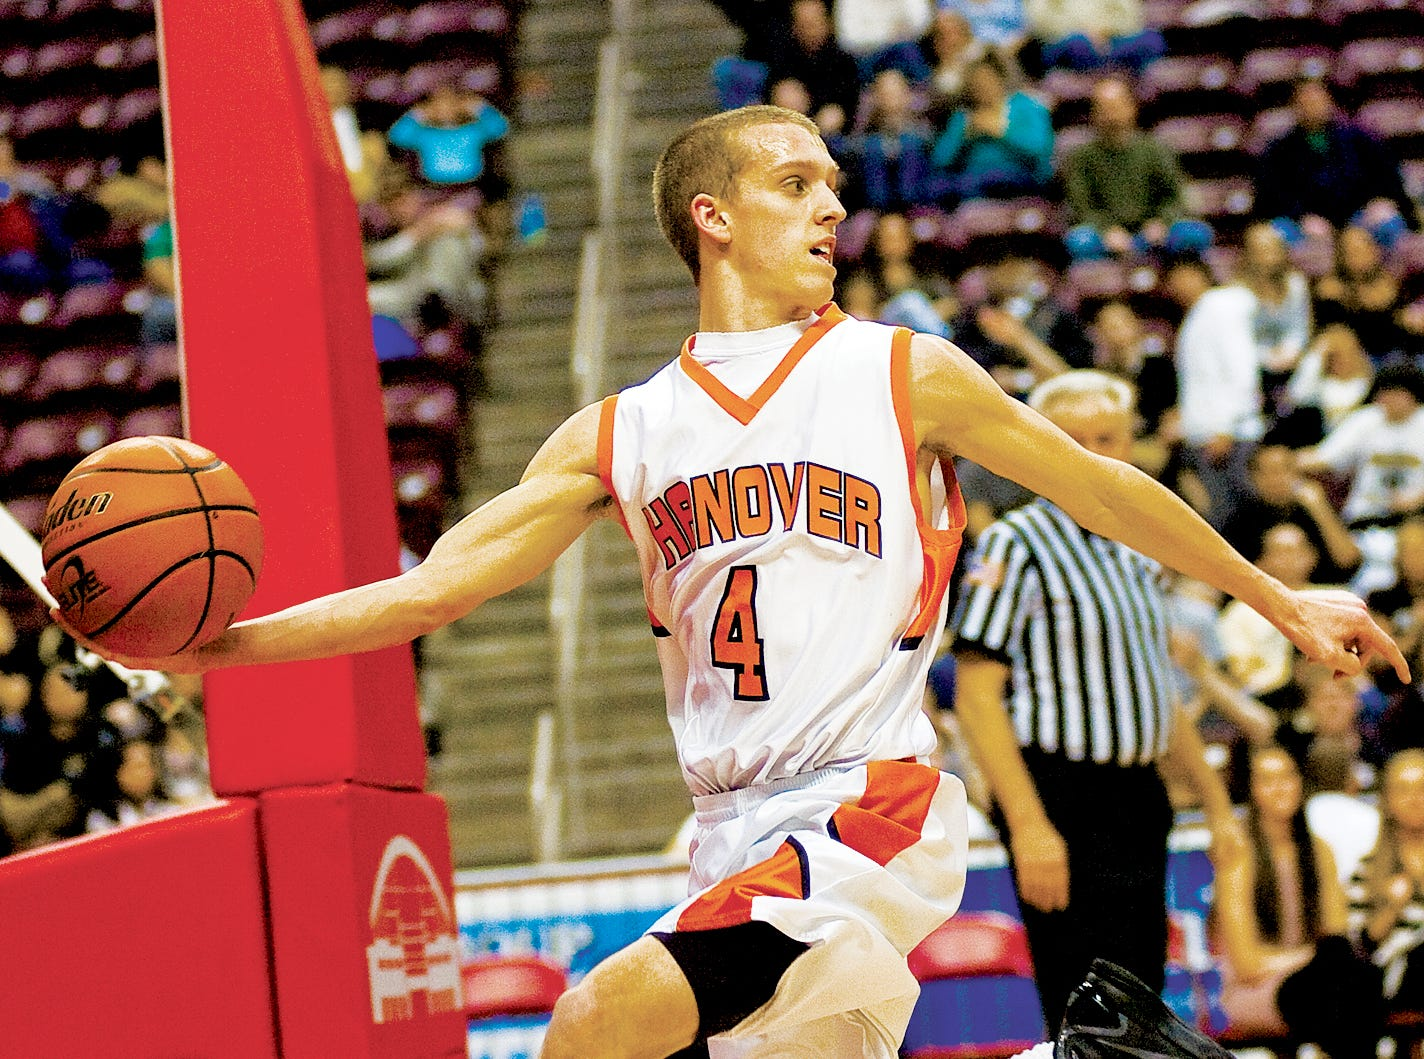 In this file photo from 2011, Hanover's Pete Yingst jumps on a rebound during Friday's championship District 3 game against Delone Catholic. Hanover took the title 54 to 51 at the Giant Center in Hershey.